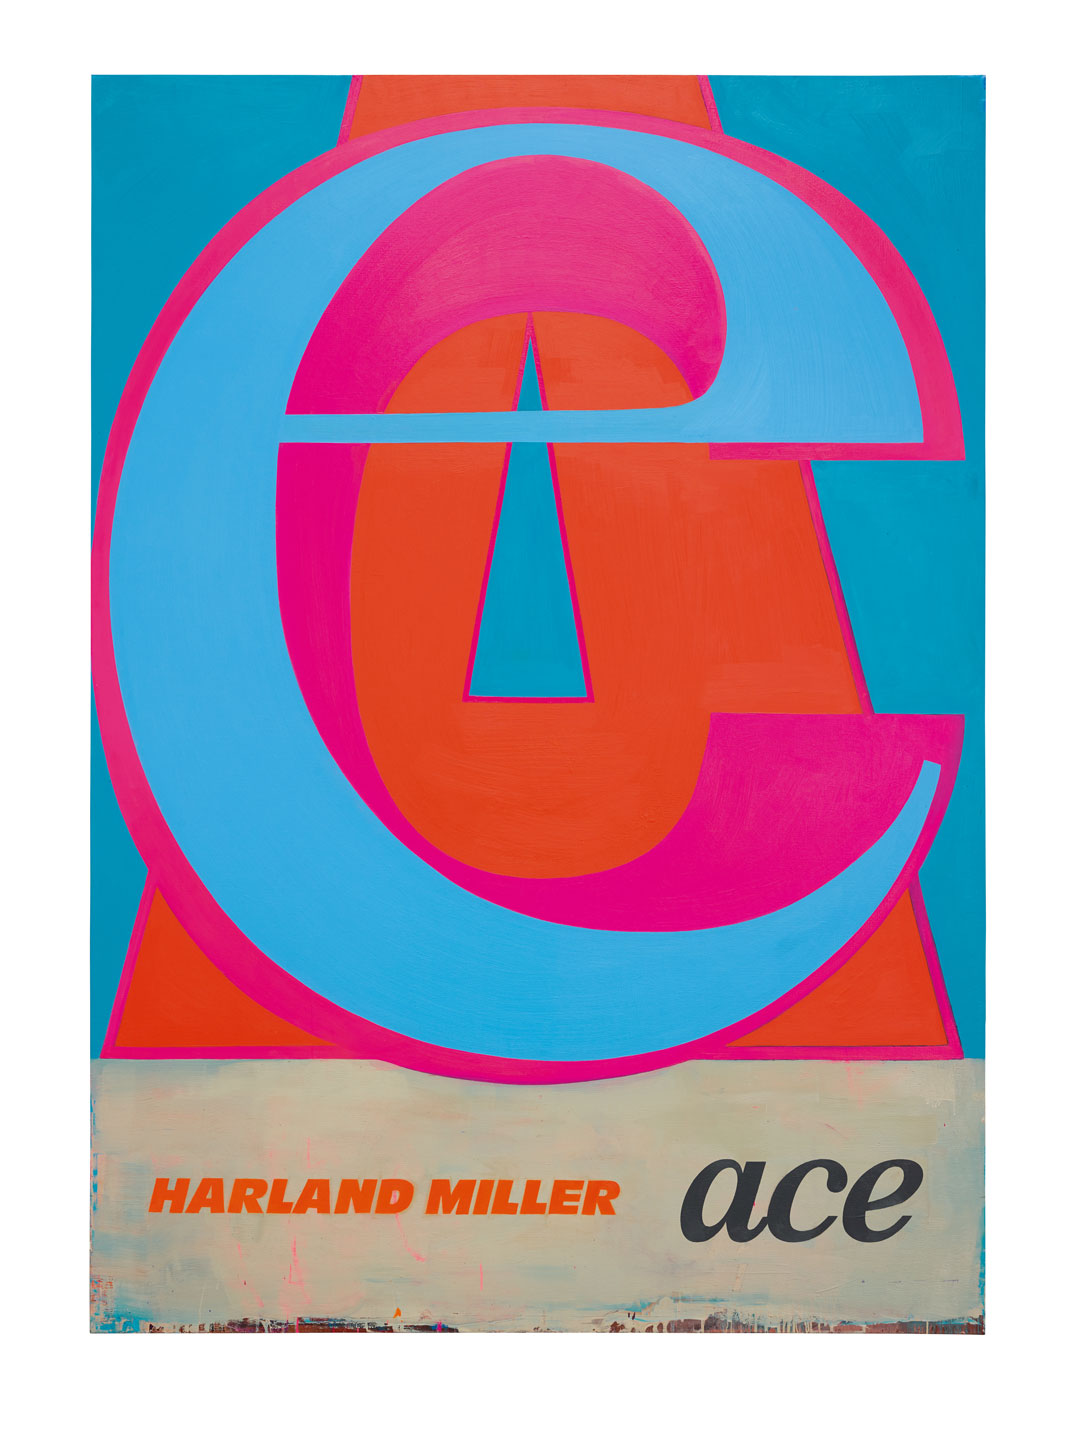 Ace (2017) by Harland Miller